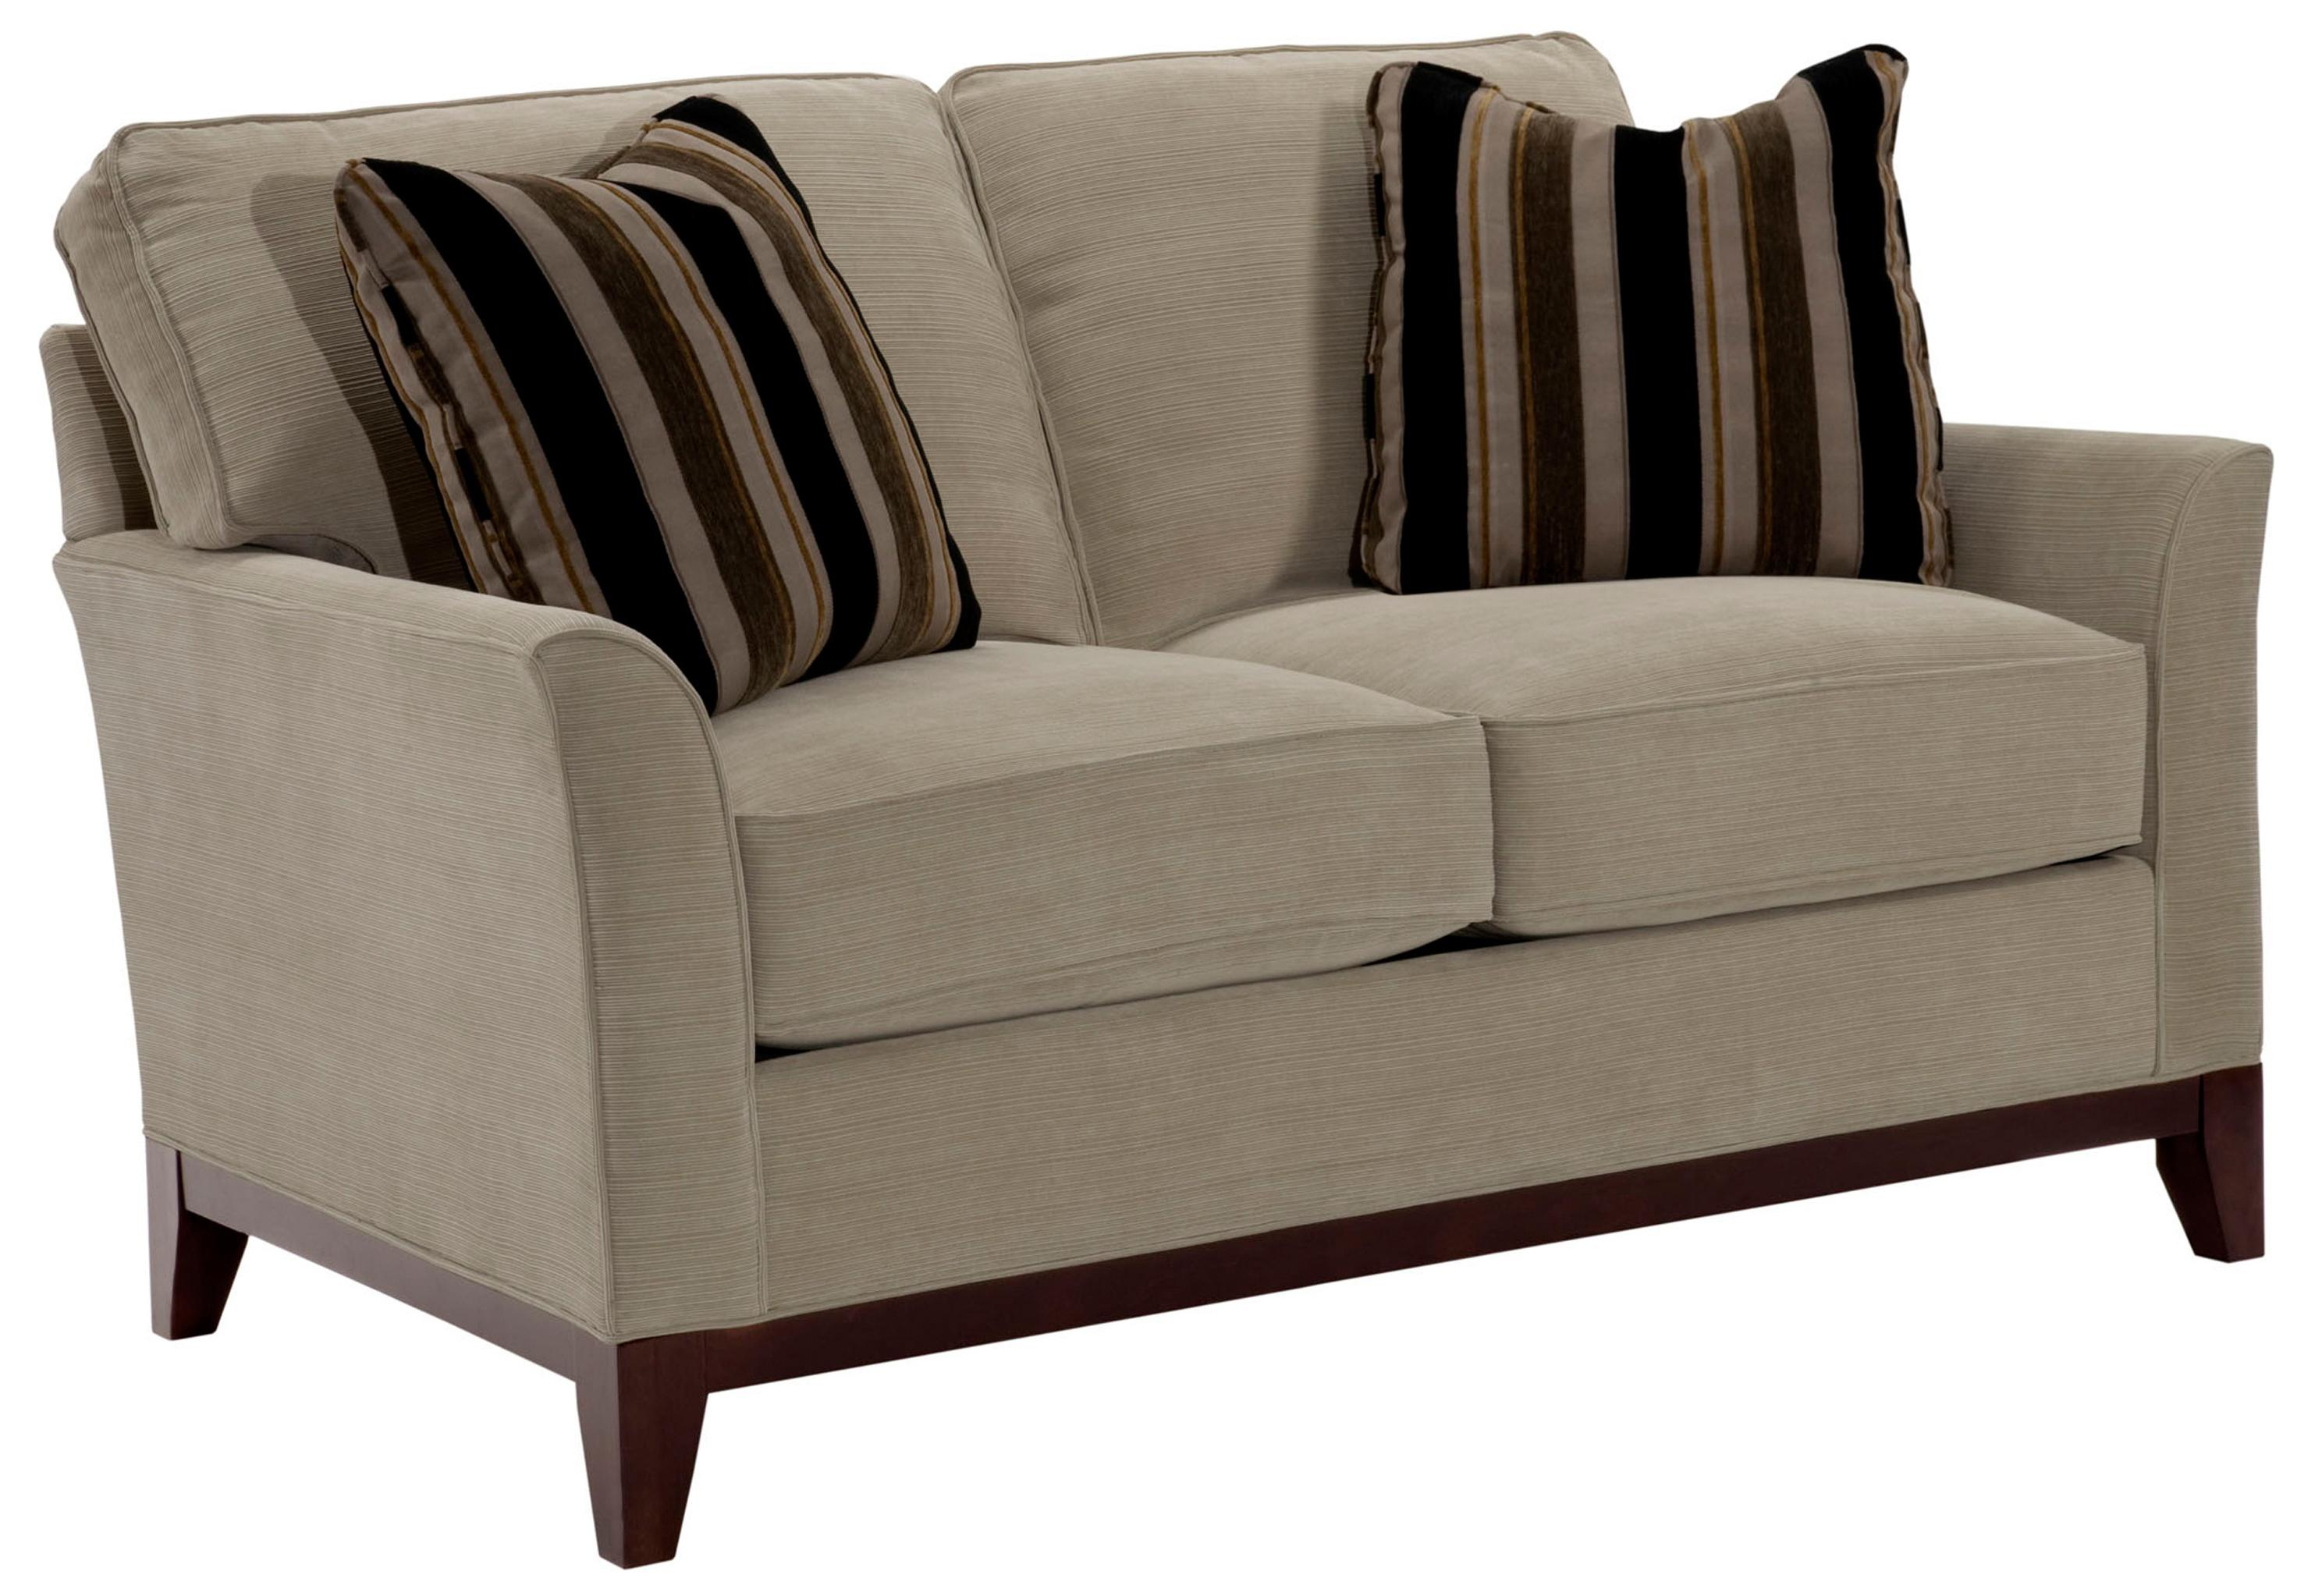 Broyhill Furniture Perspectives Loveseat - Item Number: 4445-1